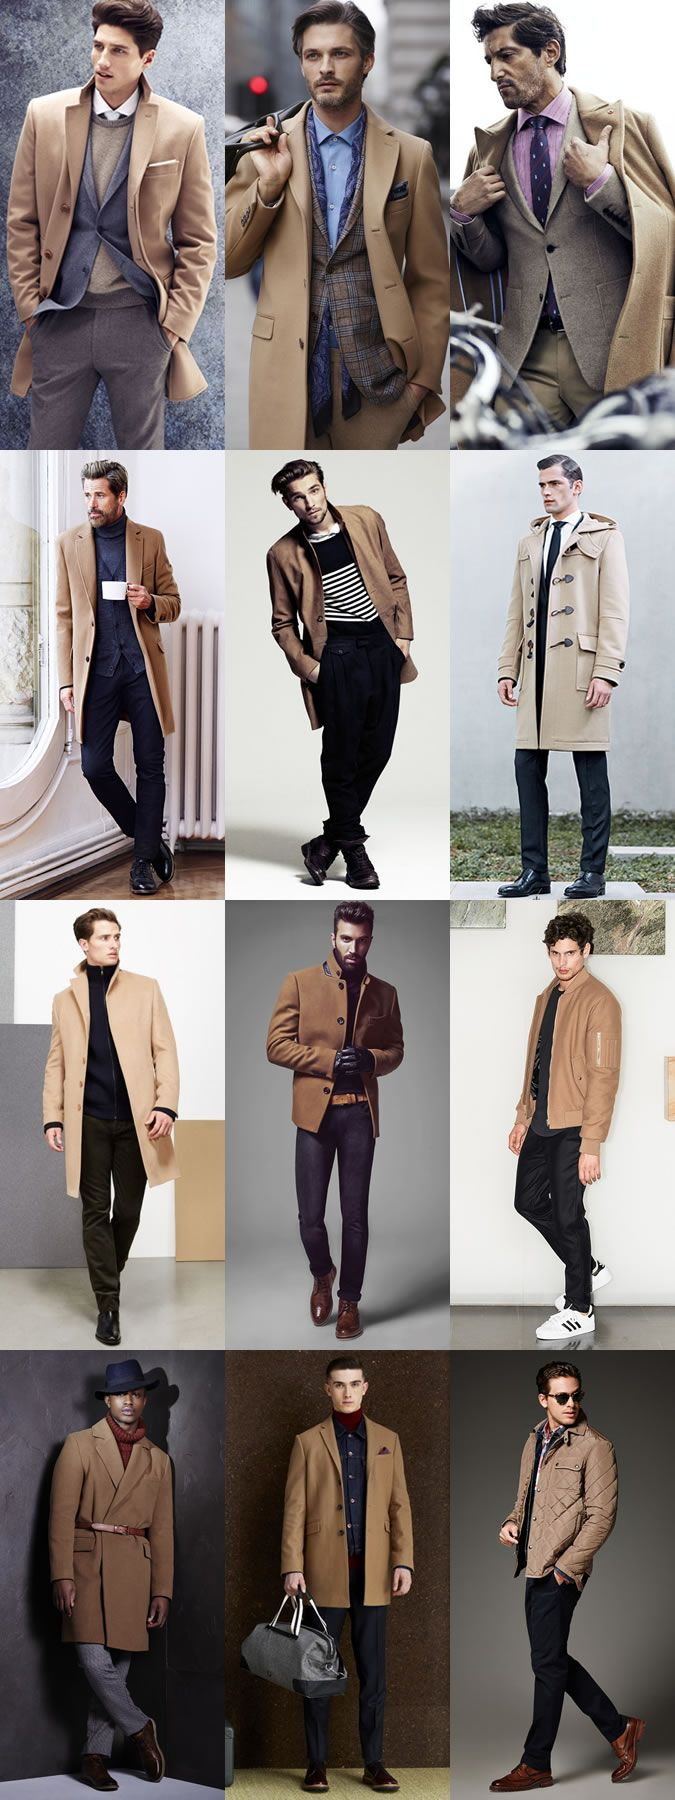 FashionBeans aims to prove that camel is one of easiest colours to incorporate into your wardrobe as autumn fades into winter.